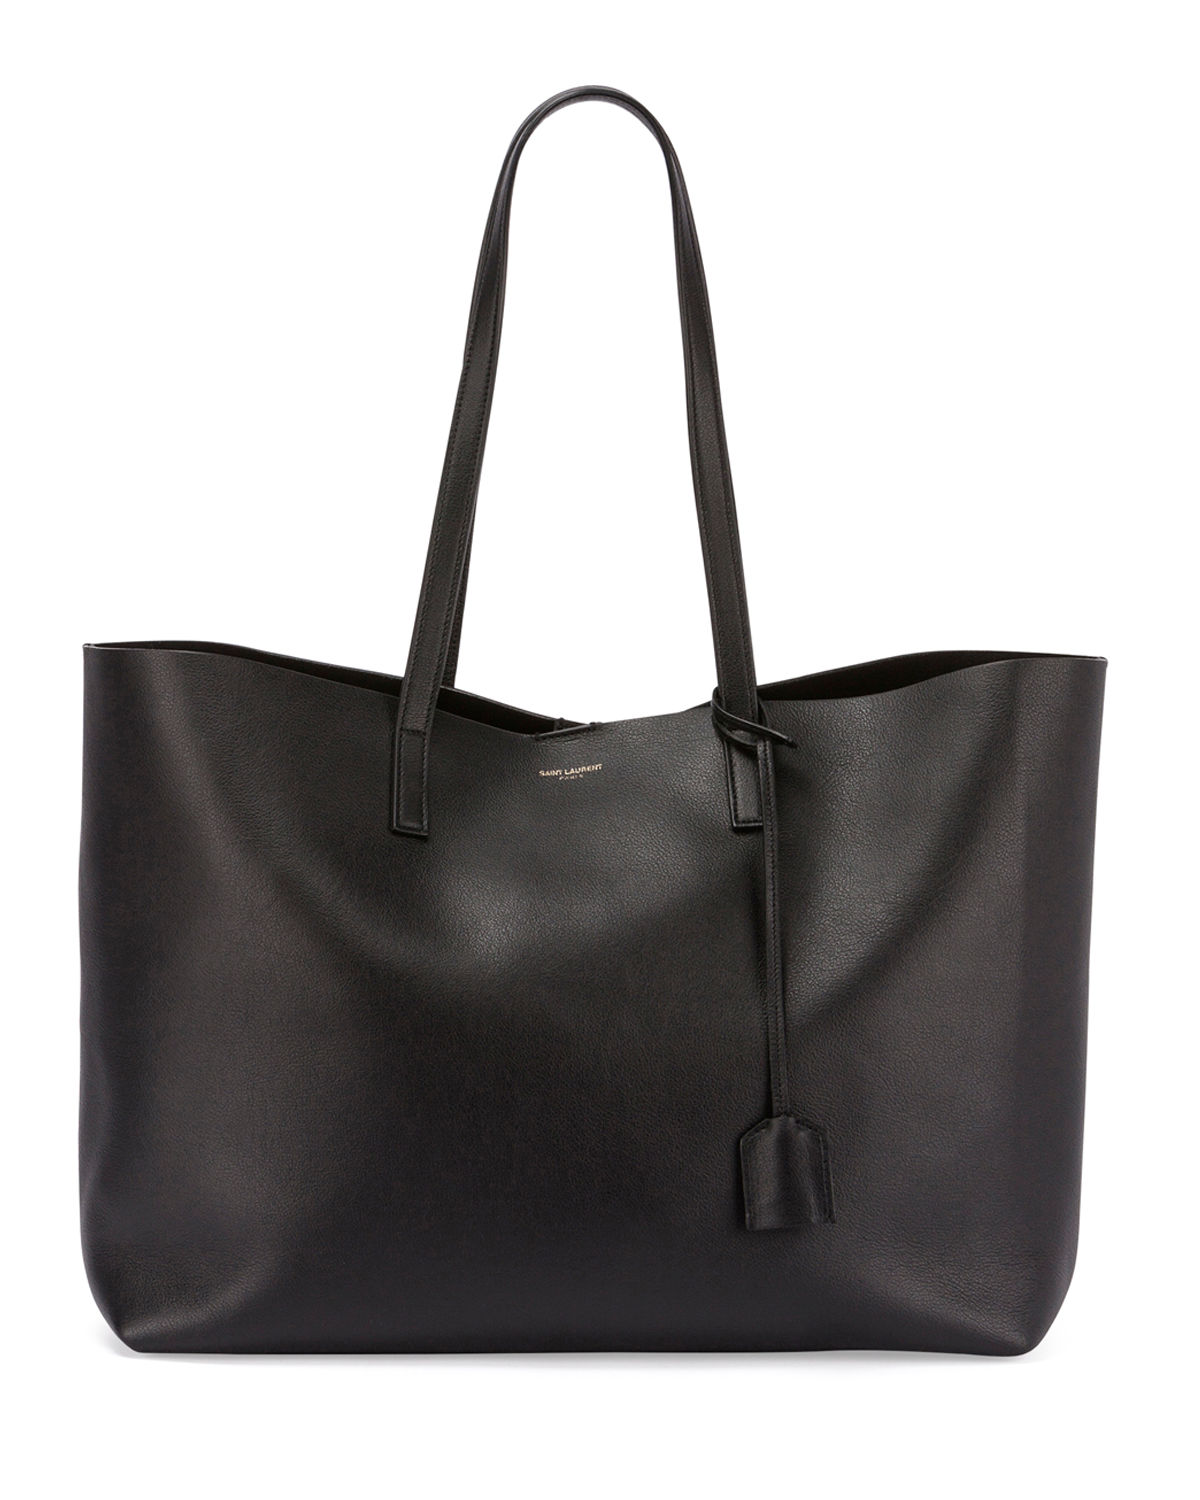 Saint Laurent East West Shopping Tote Bag  aa206e17b3fd1